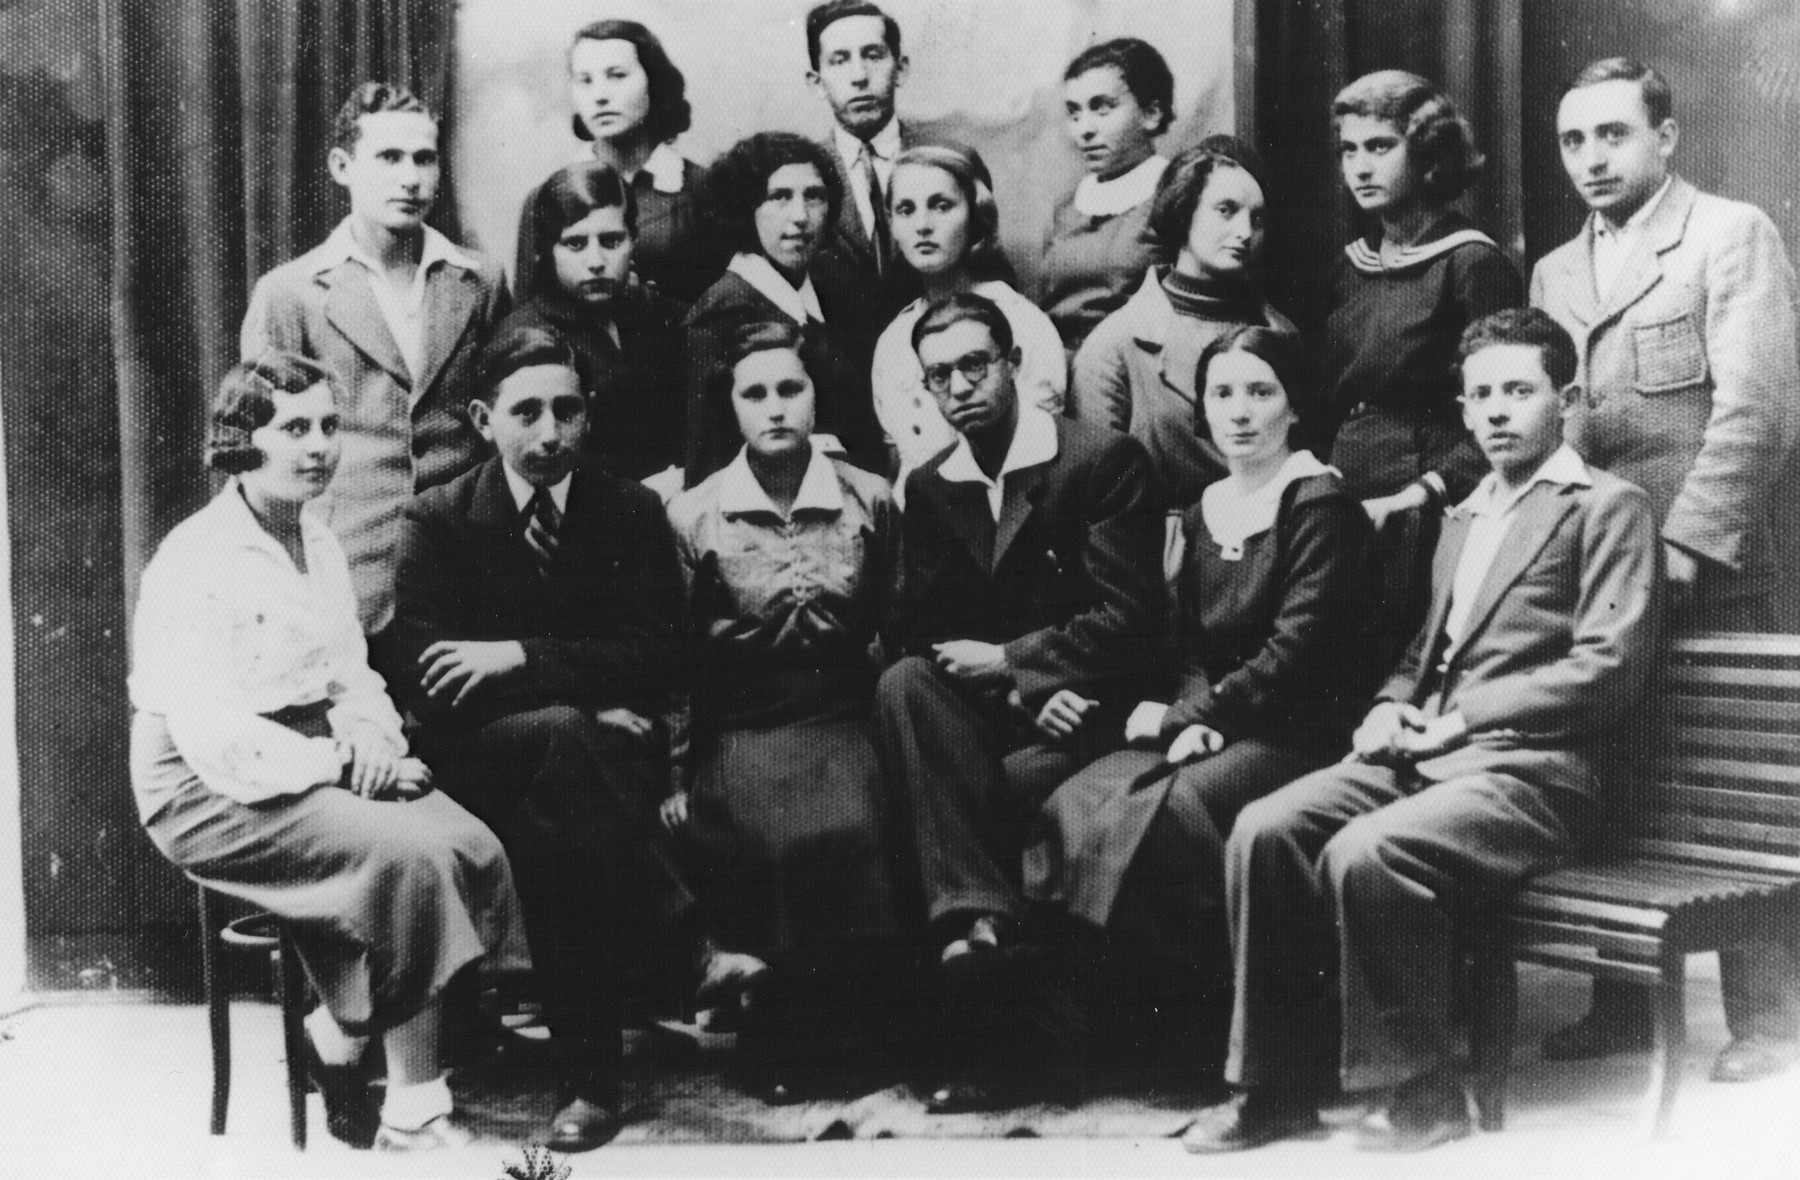 Group portrait of members of the Hashomer Hatzair Zionist youth movement.  Among those pictured is Shmuel (Miles) Lerman (first row, second from the left).